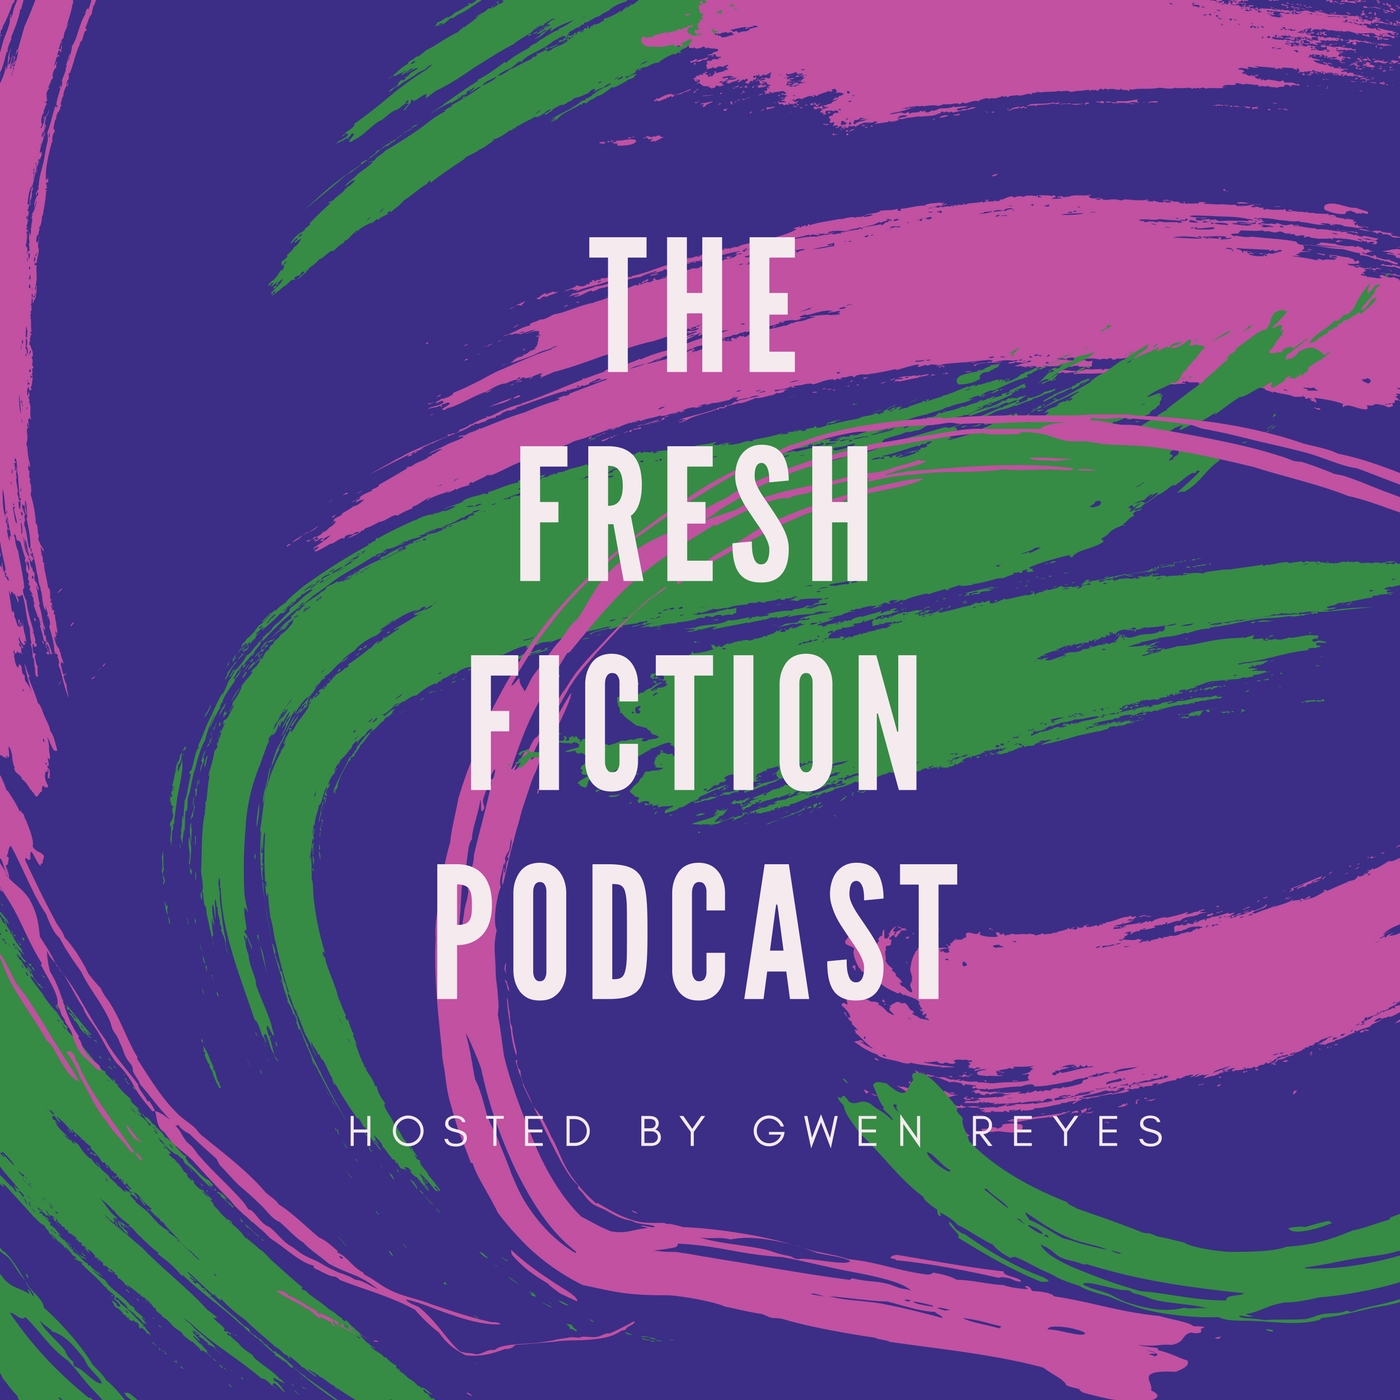 The Fresh Fiction Podcast